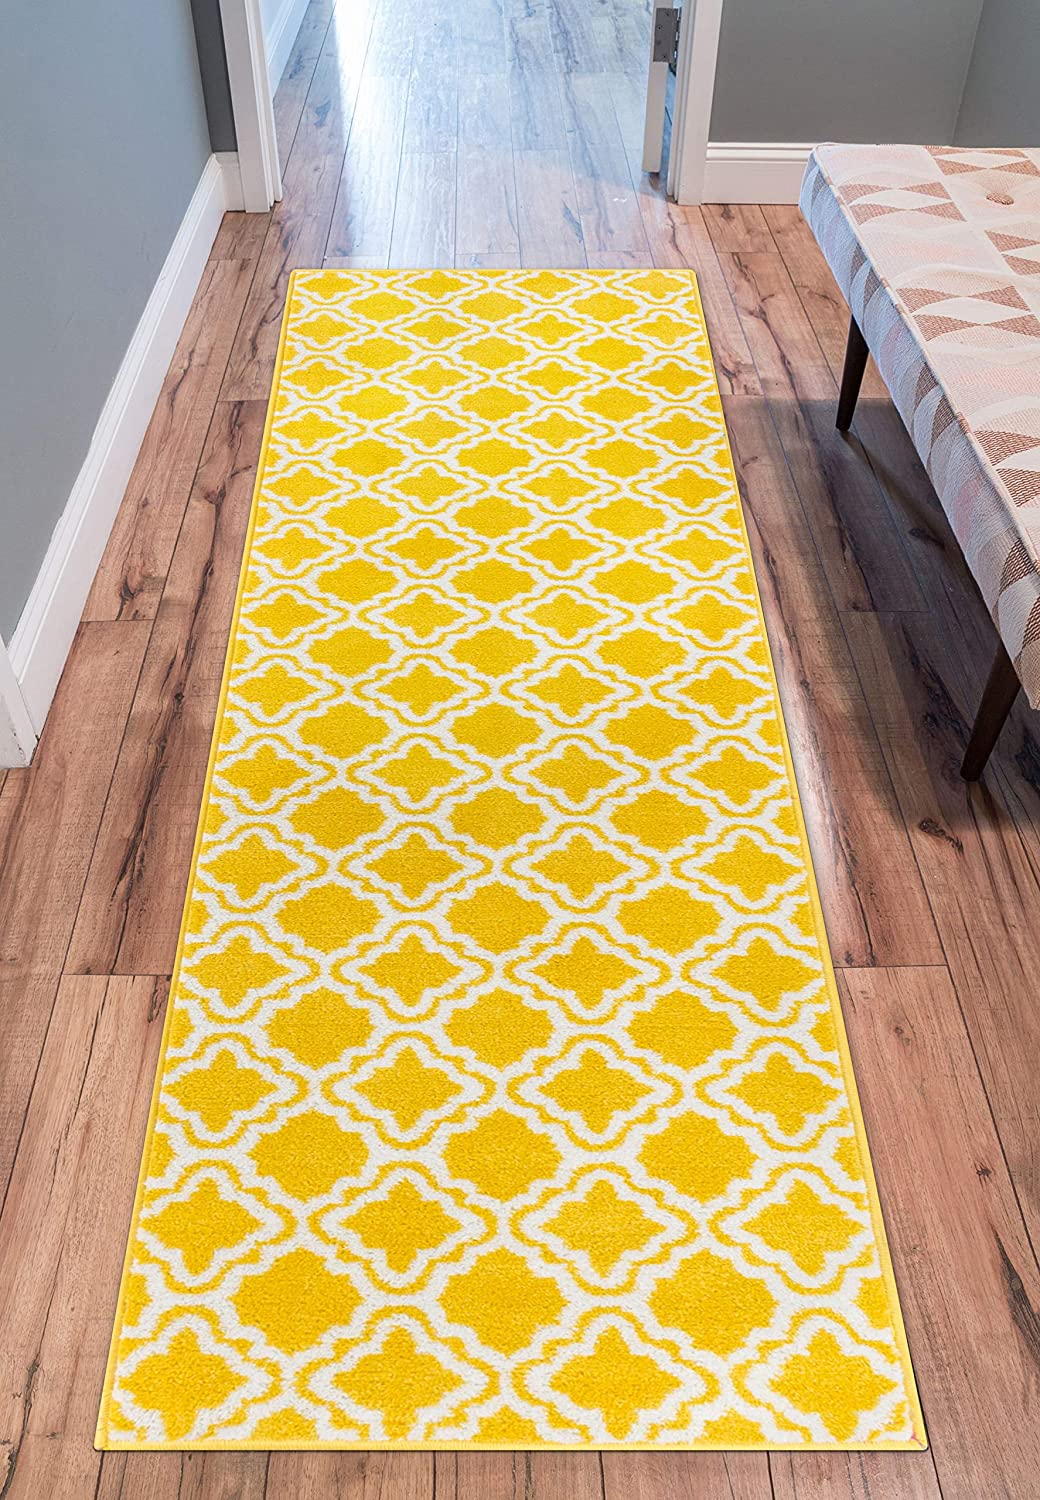 Modern Rug Calipso Yellow 2'X7'3'' Runner Lattice Trellis Accent Area Rug Entry Way Bright Kids Room Kitchn Bedroom Carpet Bathroom Soft Durable Area Rug